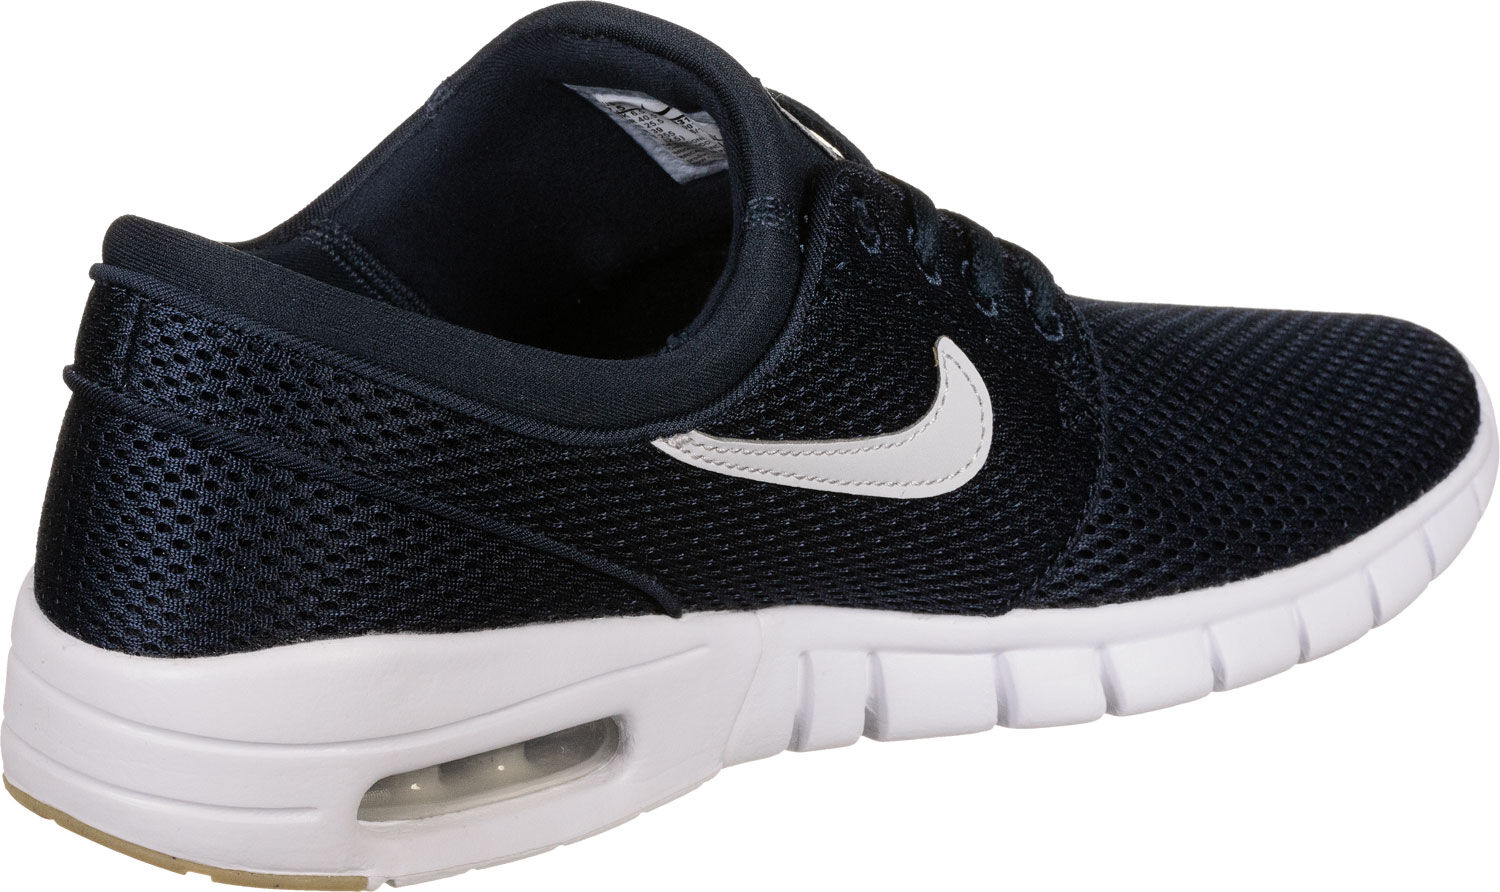 another chance coupon codes really comfortable Stefan Janoski Max - Baskets low - Hommes chez Stylefile